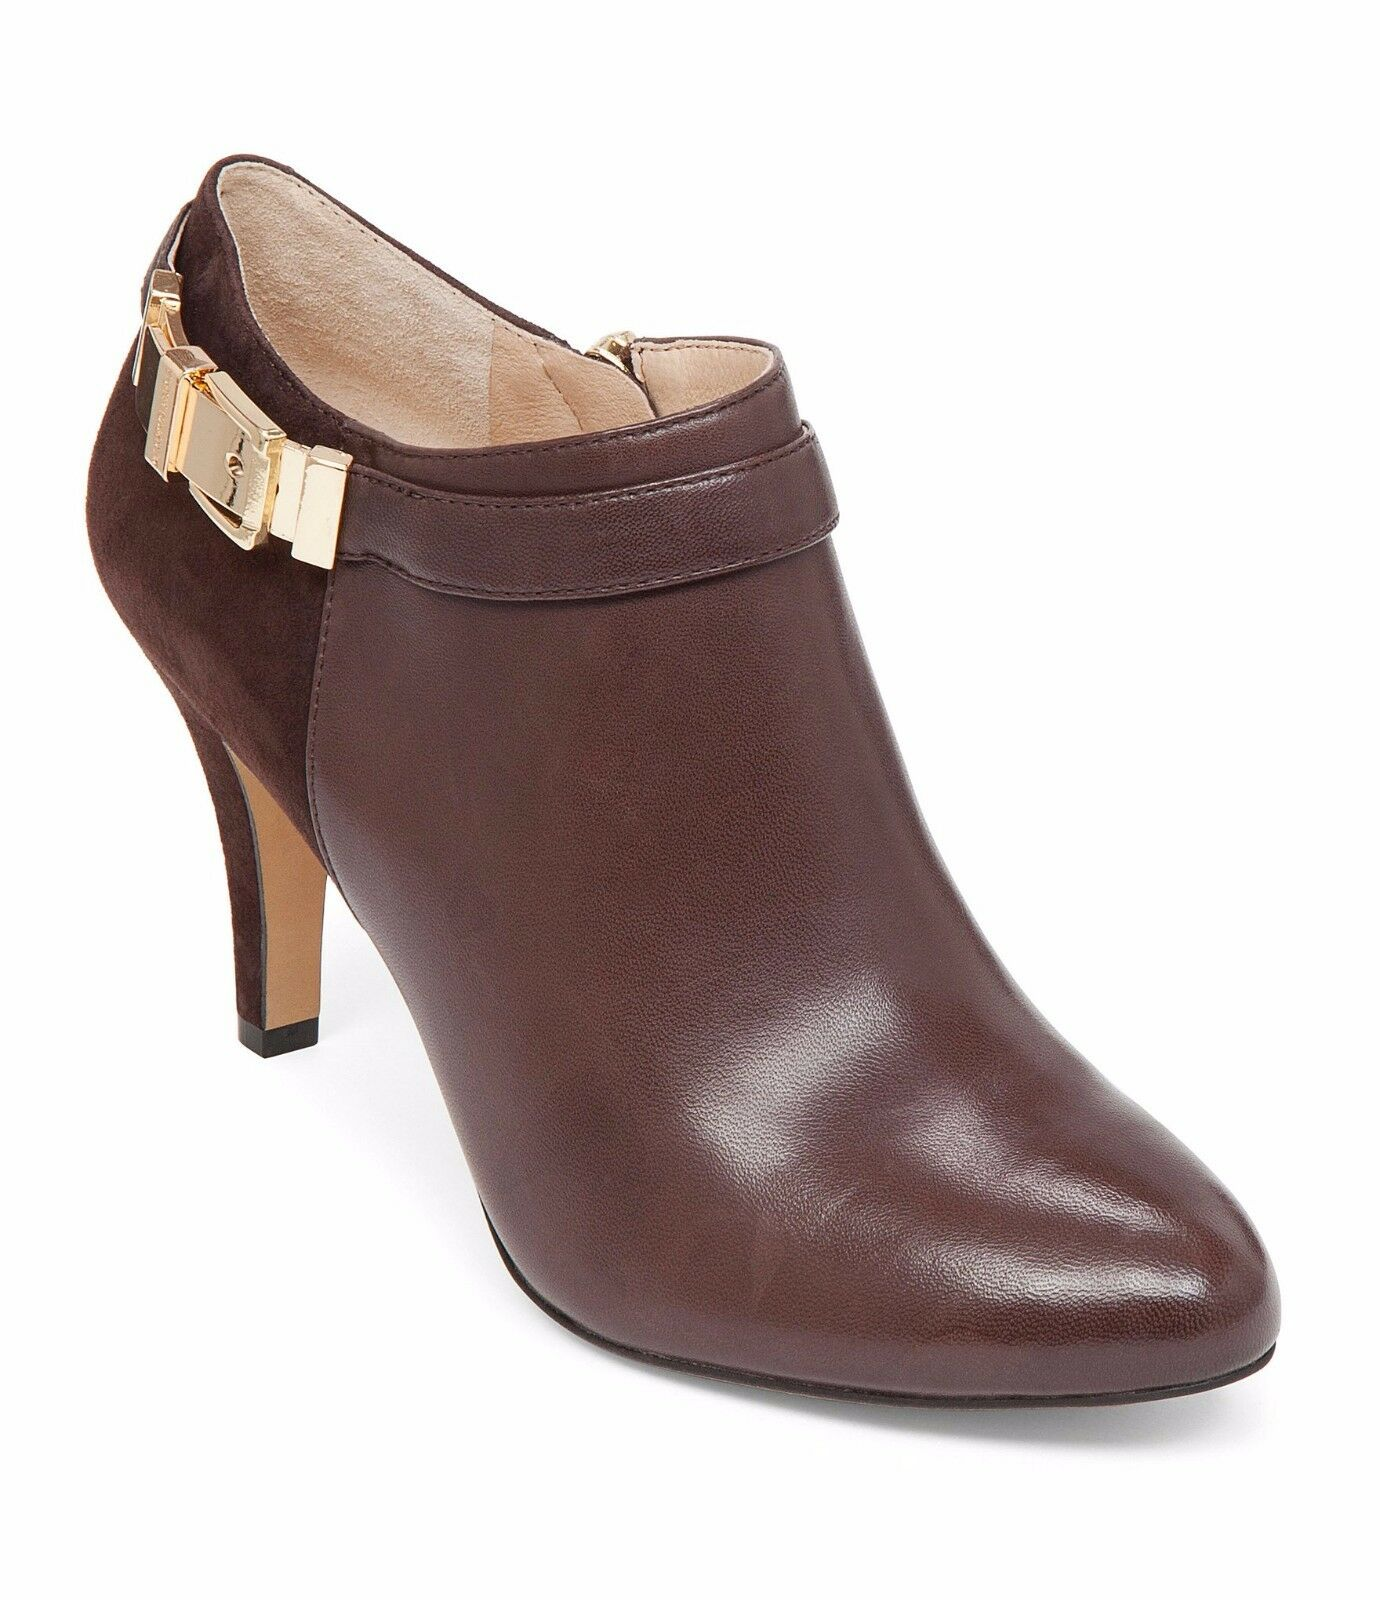 Women Vince Camuto Vanny Ankle Boots, Sizes 7-10 Chocolate Leather VC-Vanny LE